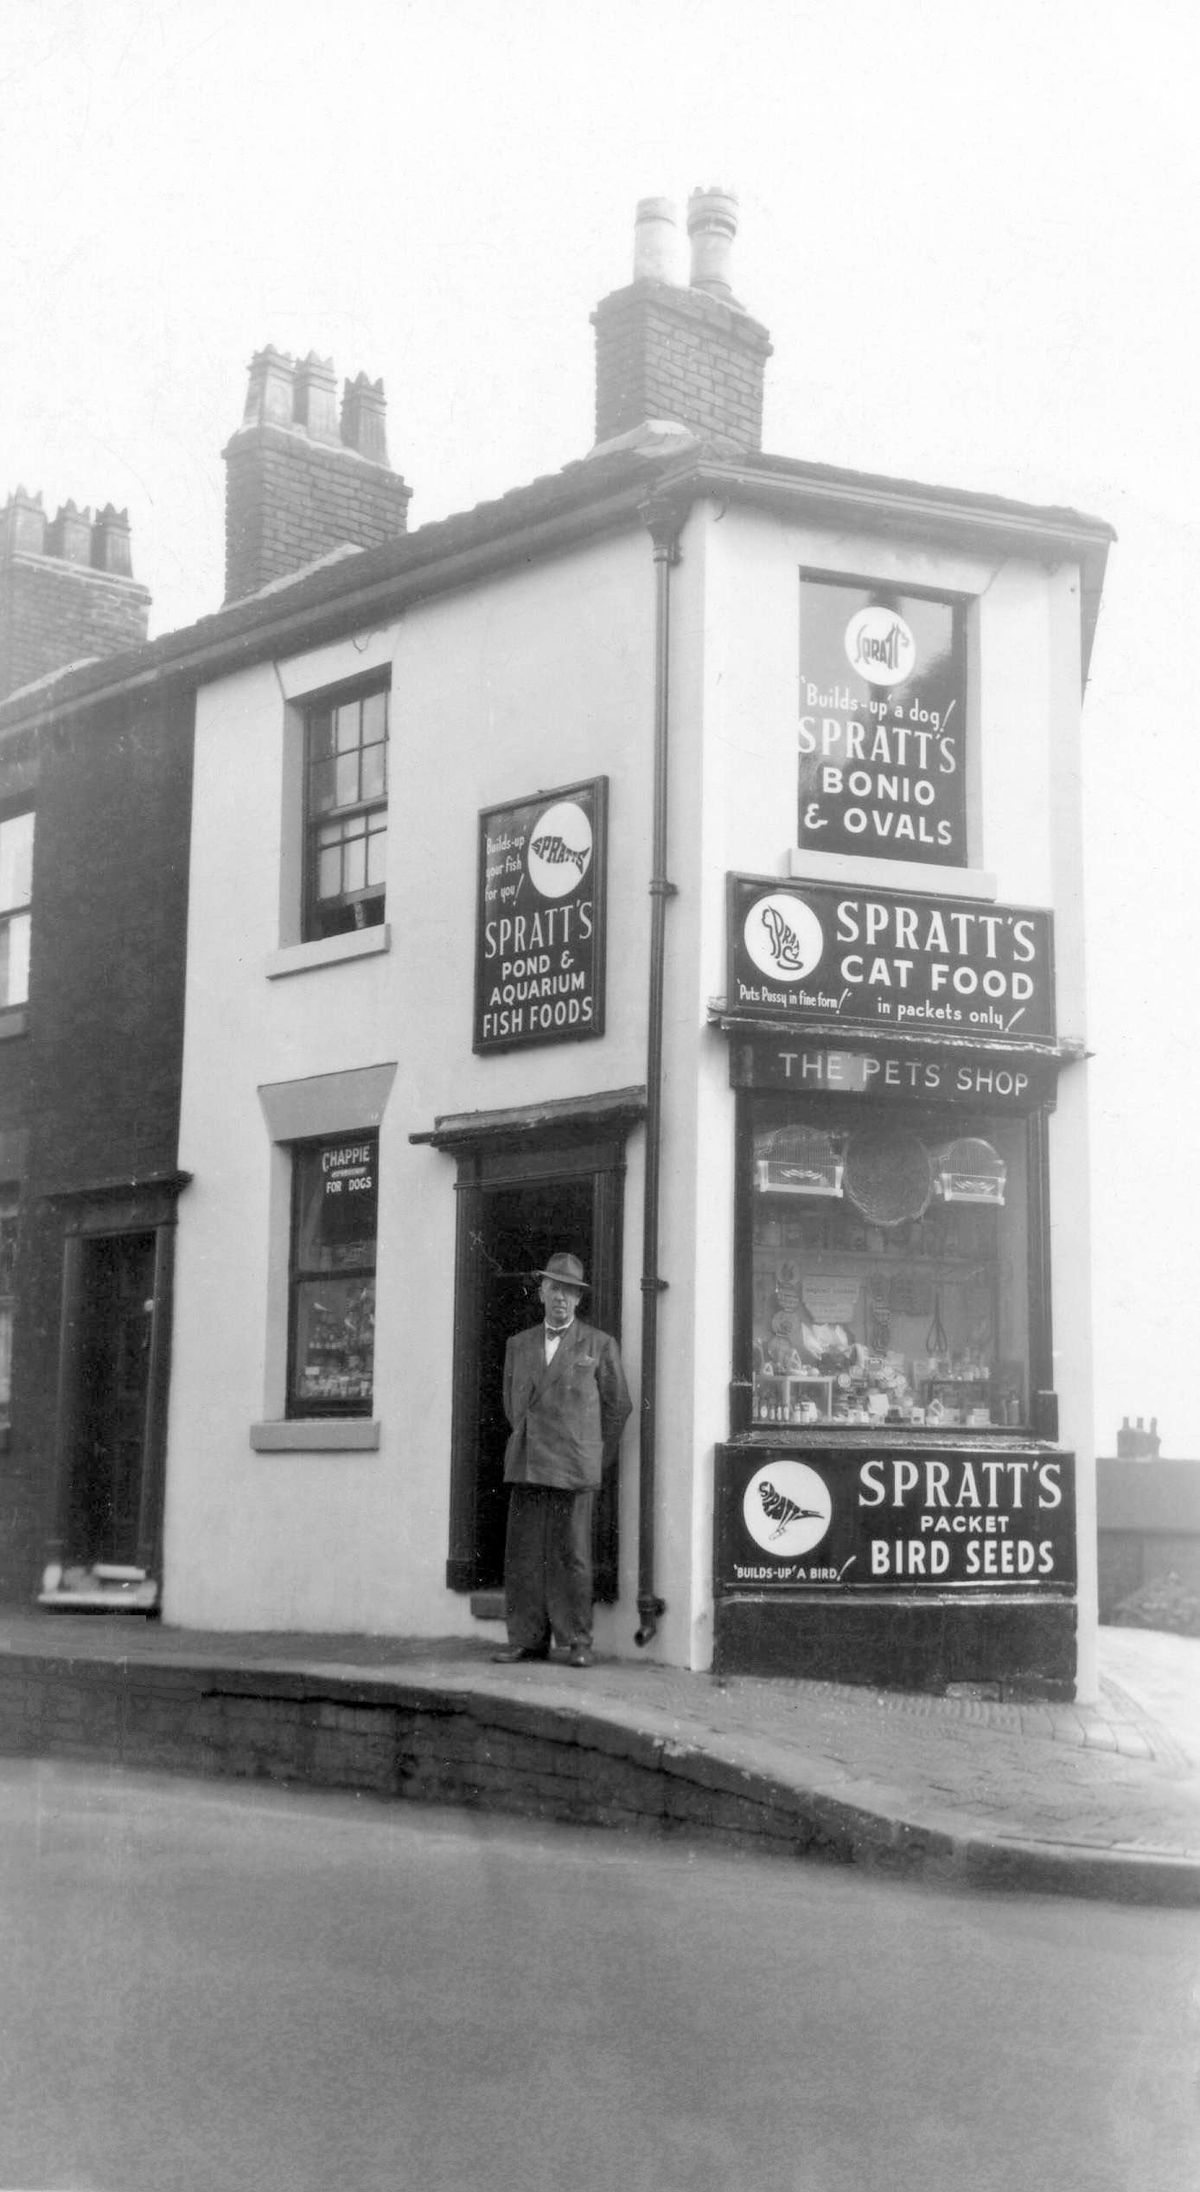 All my own work... Andy's grandfather Charles Harrington outside Spratts pet shop, location unknown.